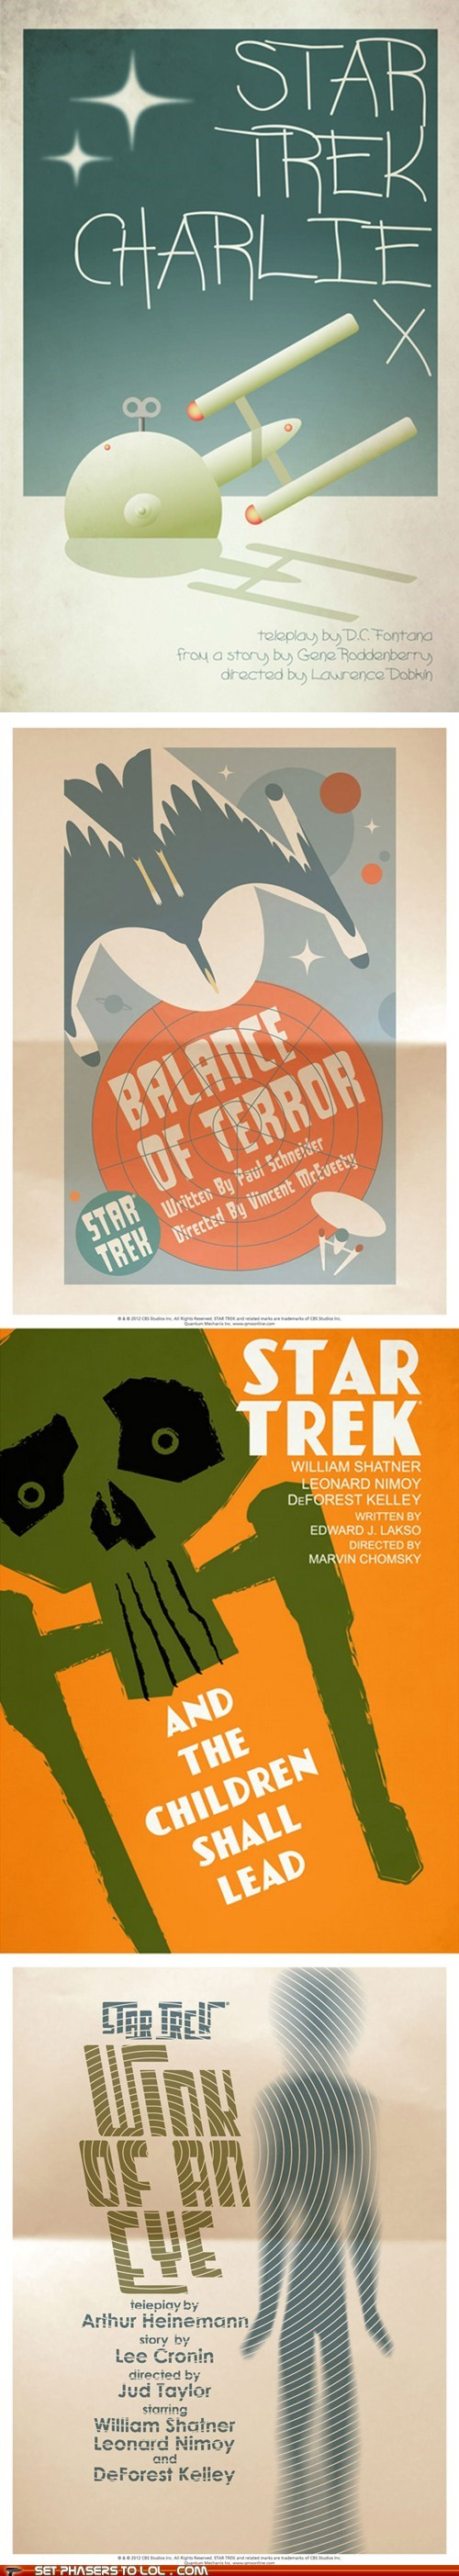 Set Phasers to LOL: More Retro-Style Star Trek Posters